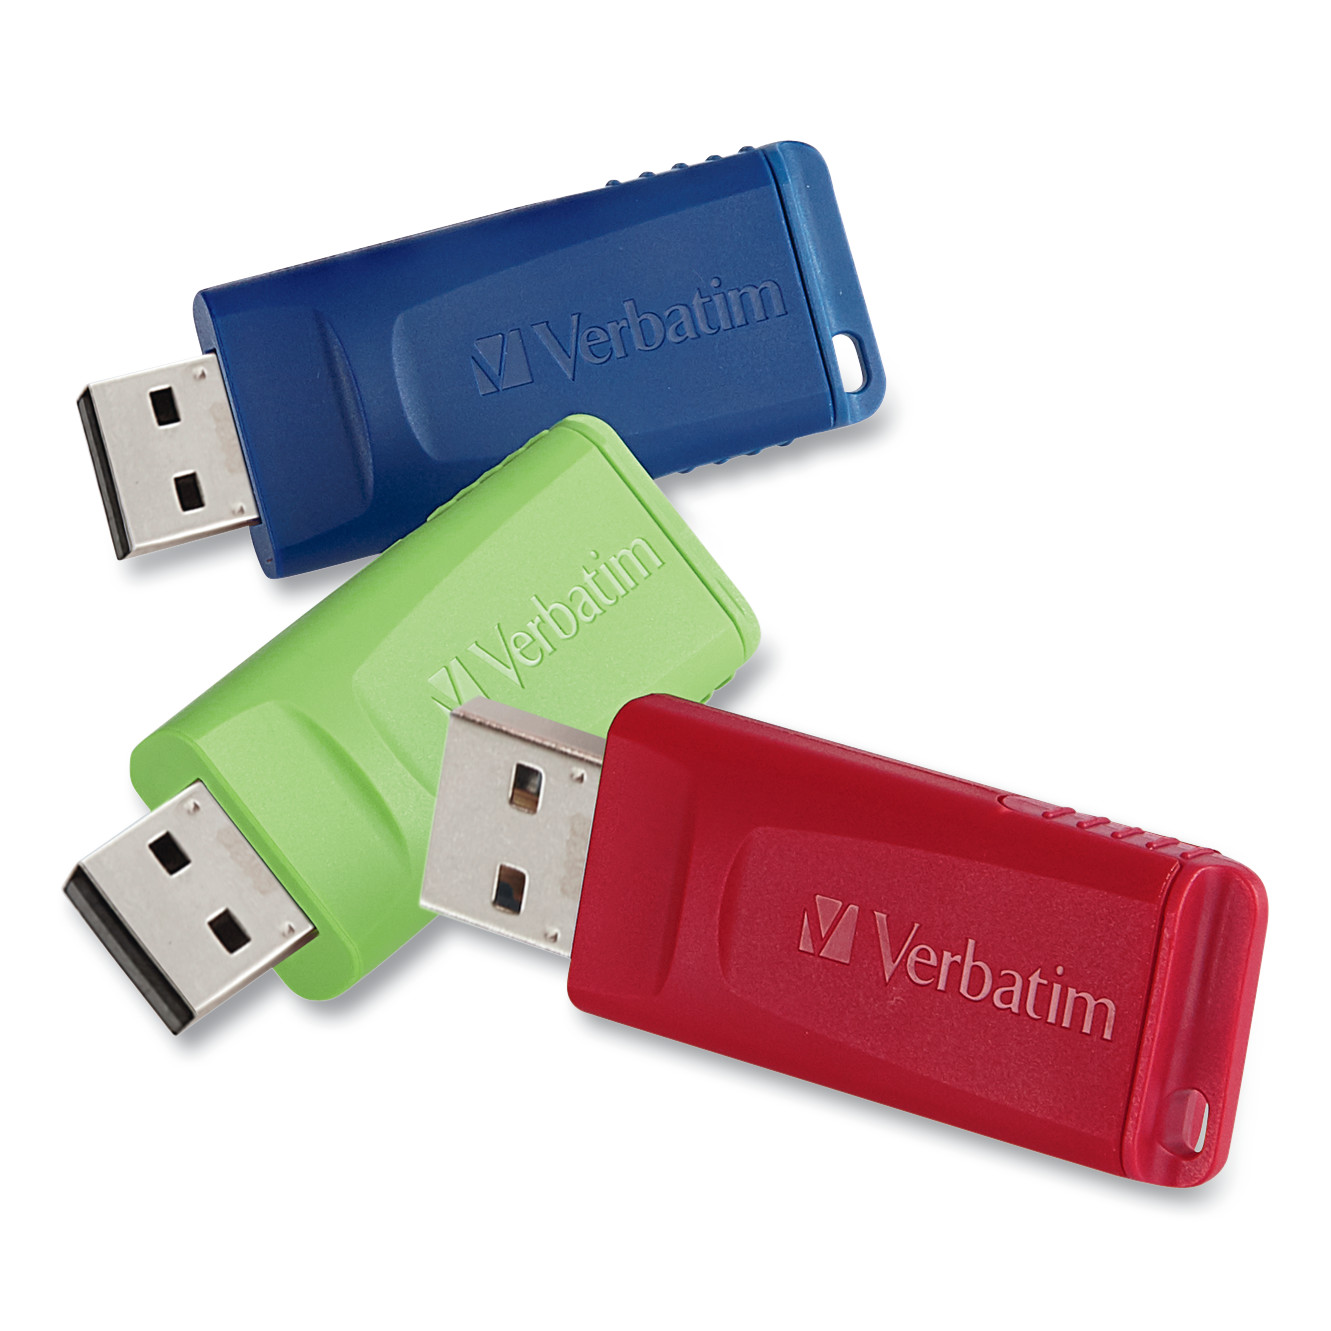 Verbatim Store 'n' Go USB 2.0 Flash Drive, 4GB, Blue/Green/Red, 3/Pack -VER97002